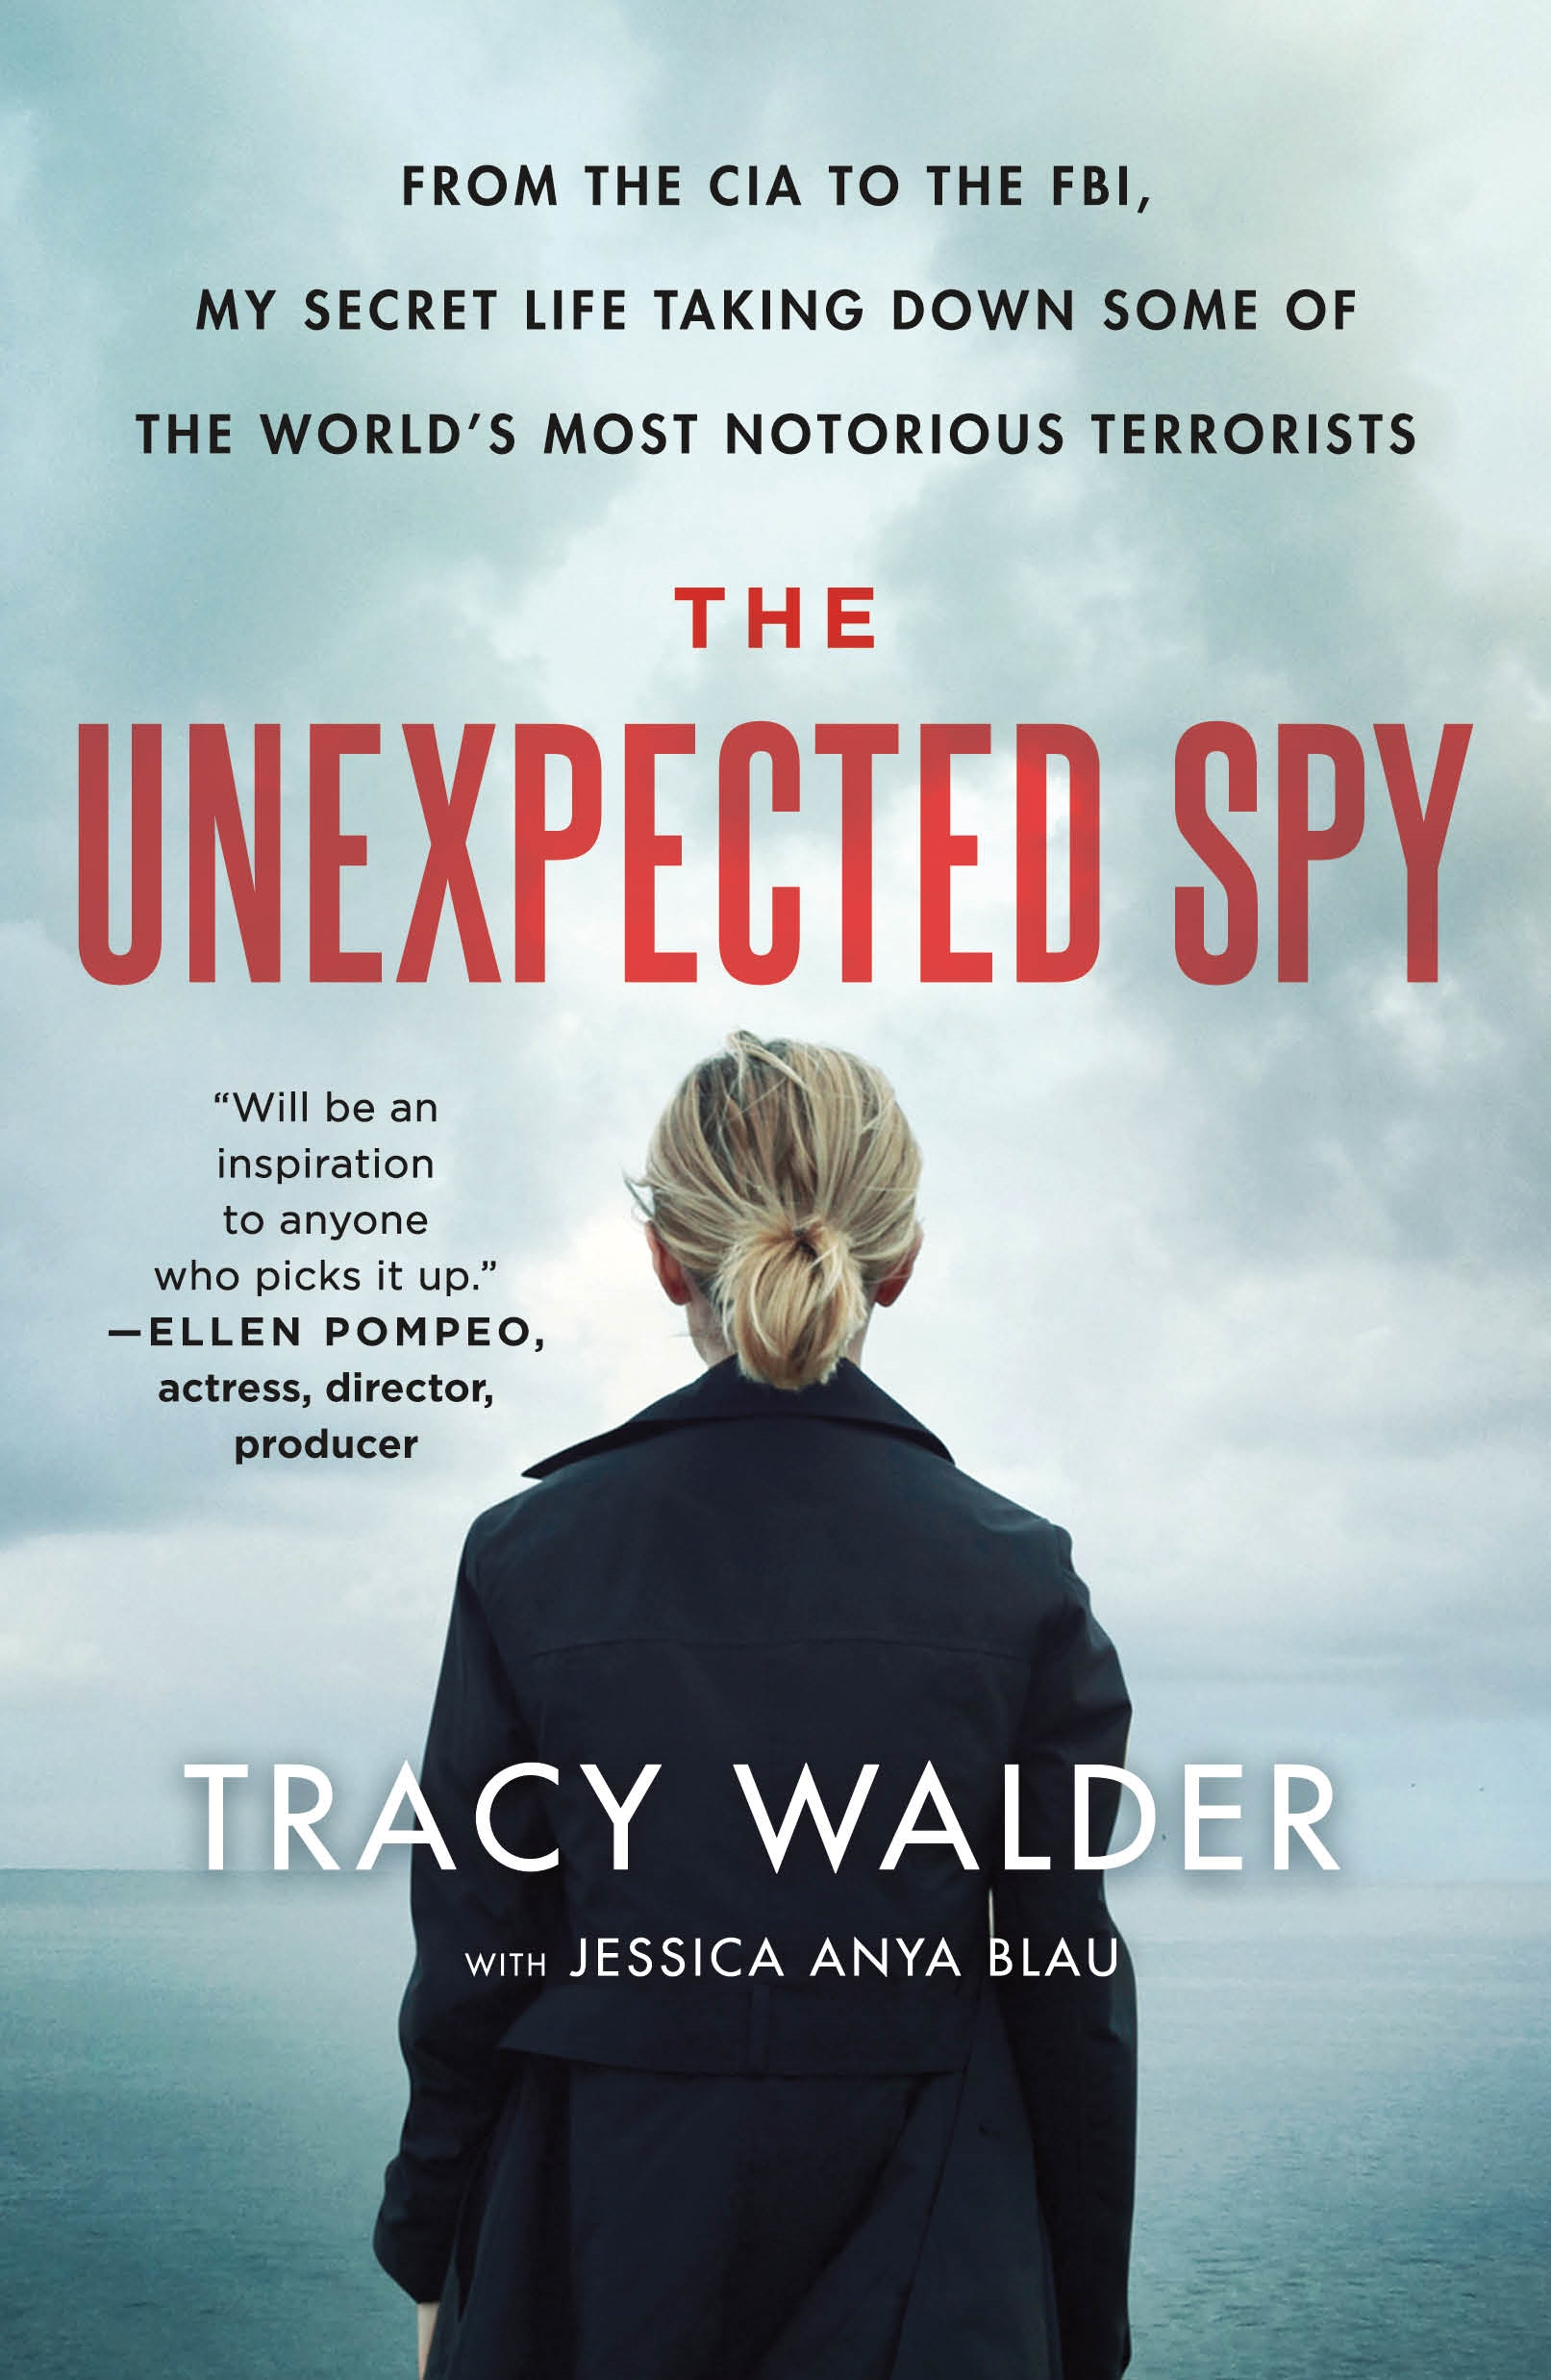 The Unexpected Spy From the CIA to the FBI, My Secret Life Taking Down Some of the World's Most Notorious Terrorists